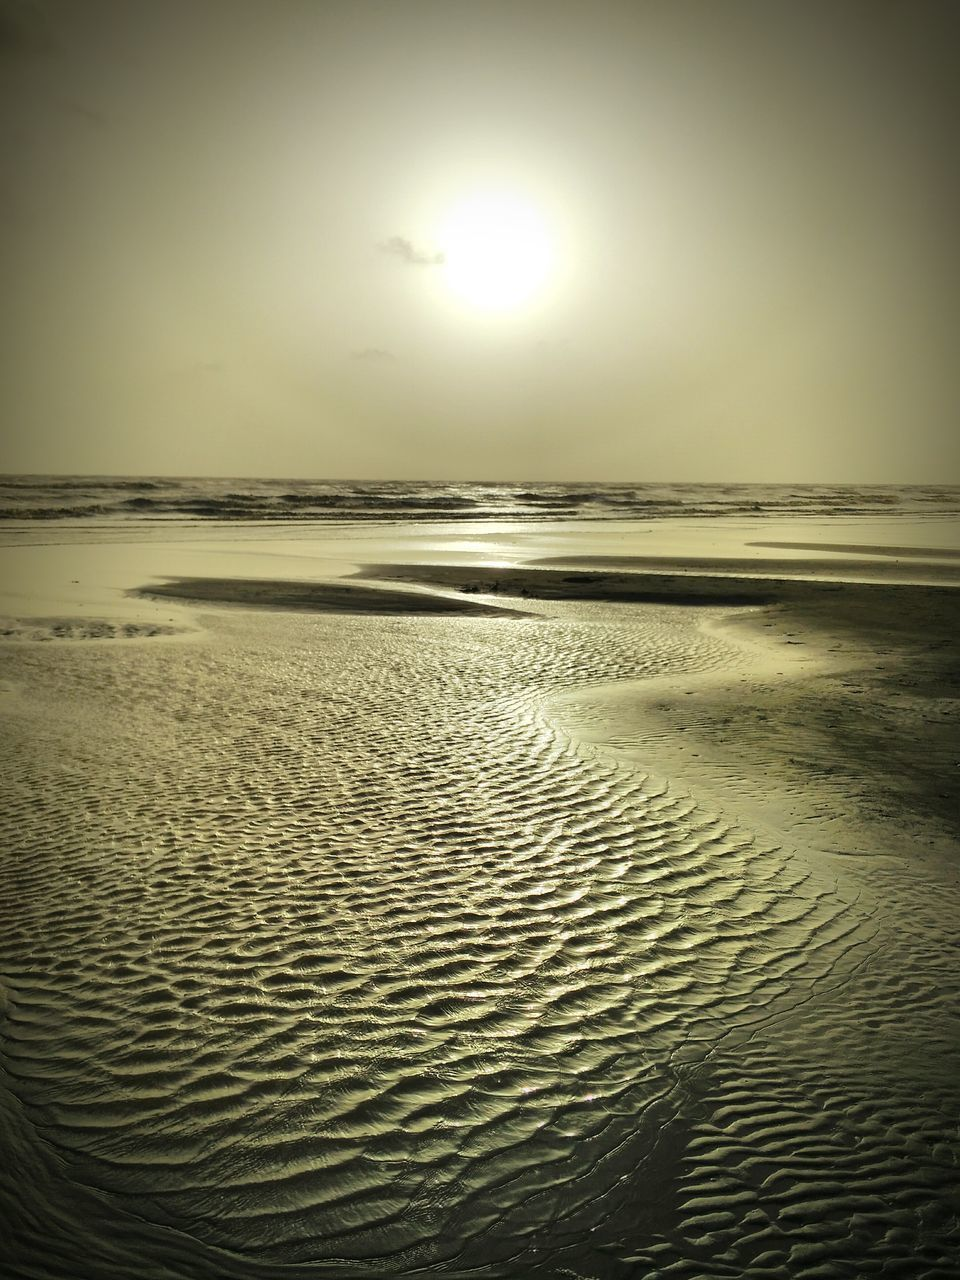 sea, water, sun, nature, beauty in nature, beach, tranquility, scenics, sand, tranquil scene, sunset, reflection, sky, idyllic, outdoors, no people, waterfront, sunlight, horizon over water, clear sky, landscape, day